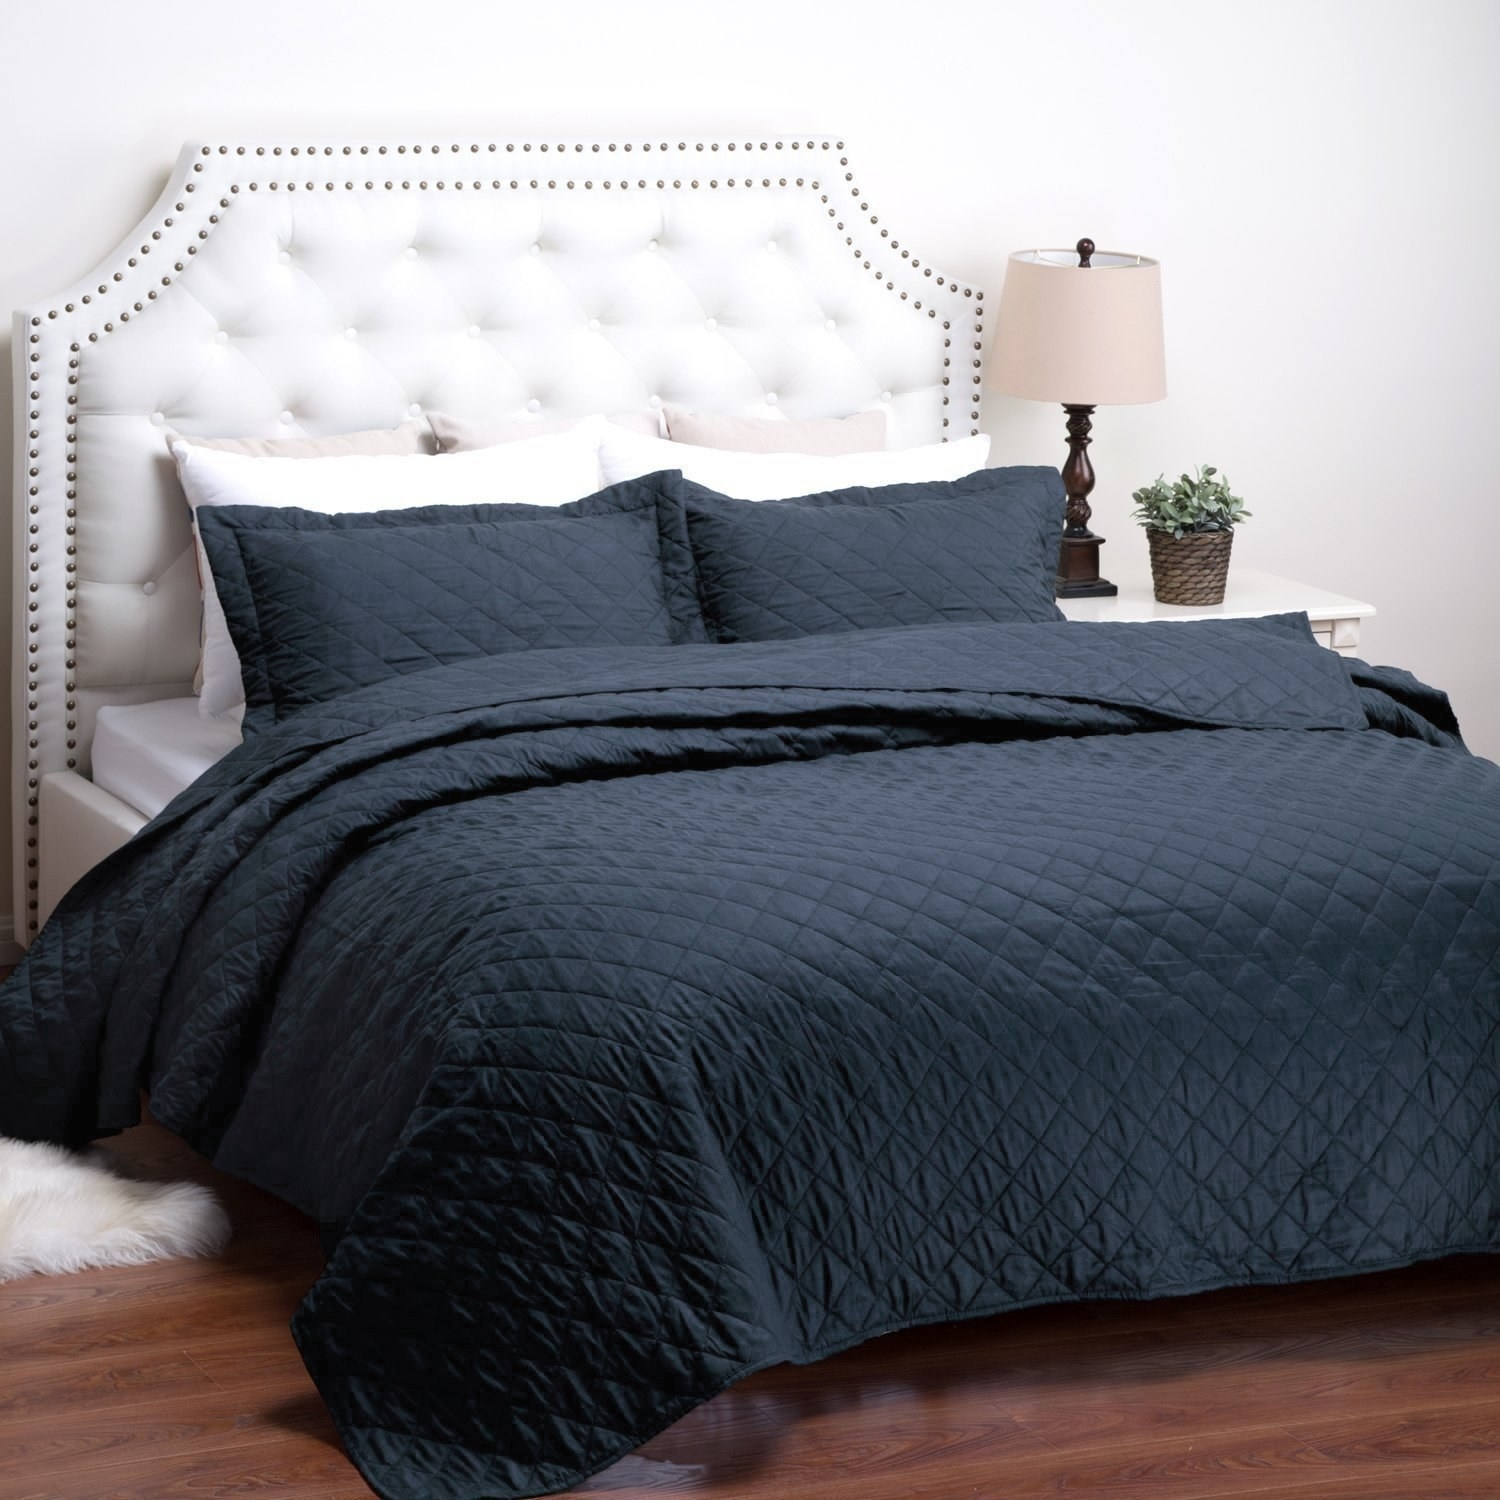 12. A Standard Quilt That Might Be A Boring Purchase, But Will Definitely  Be Worth It In The Long Run.